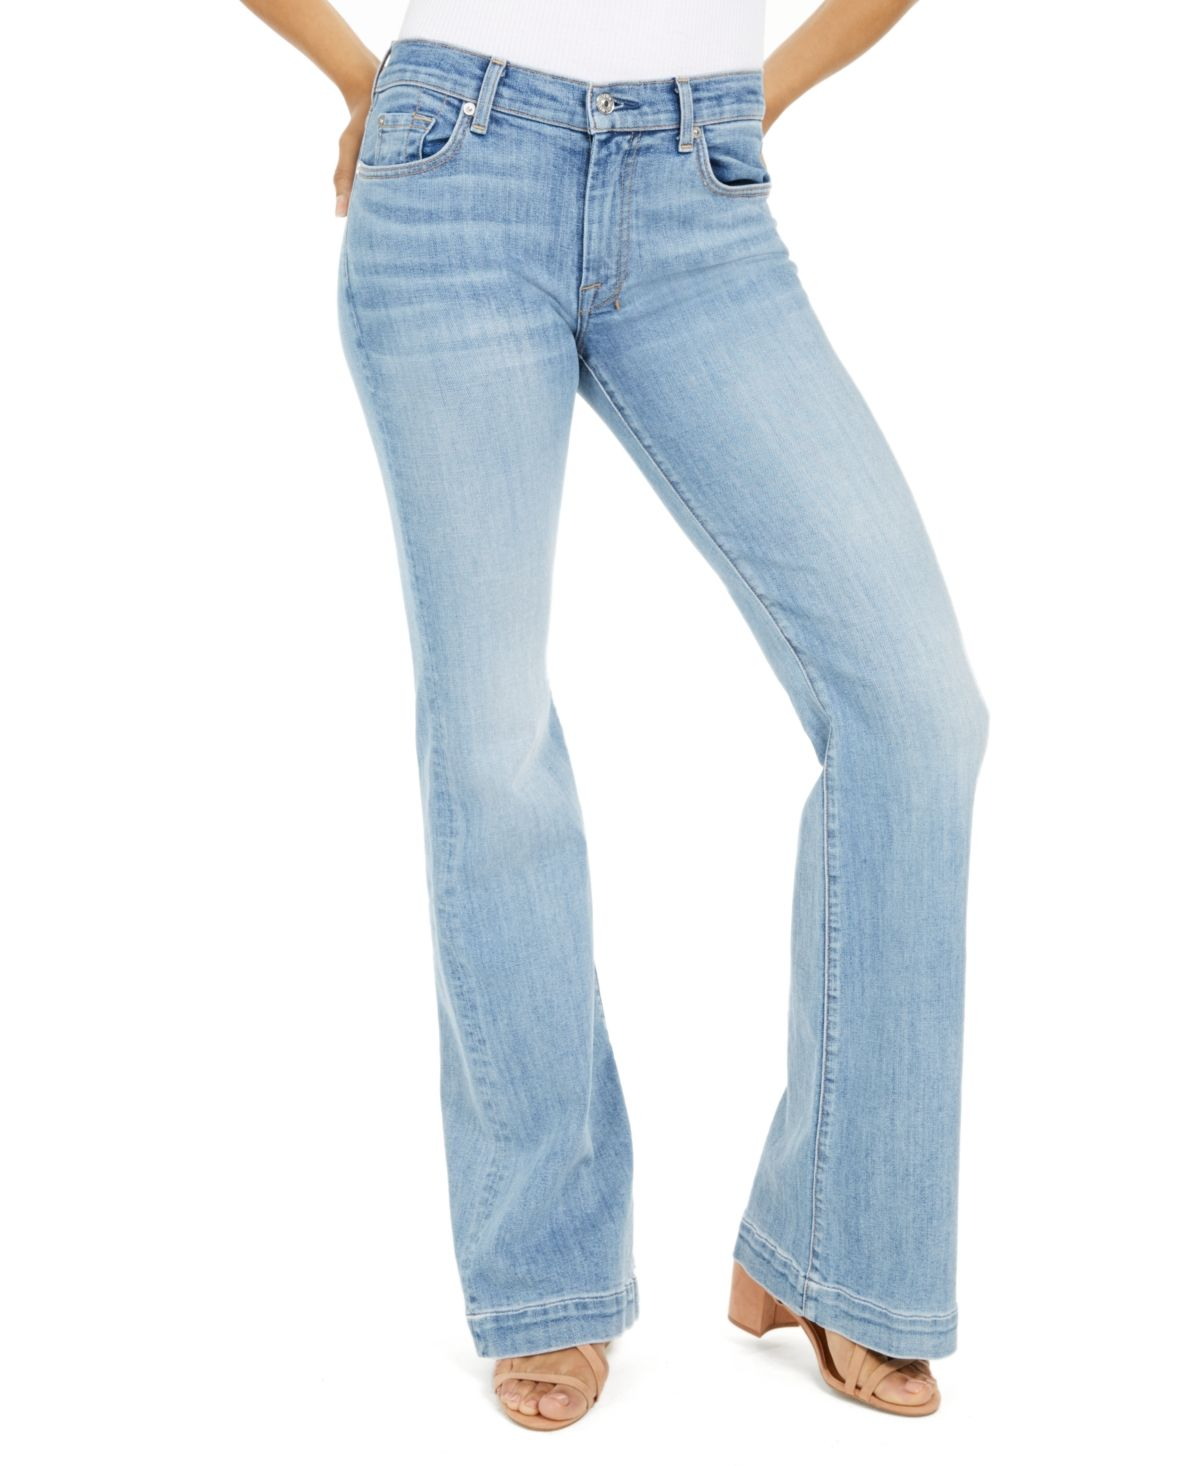 7 For All Mankind Bootcut Jeans Reviews Jeans Juniors